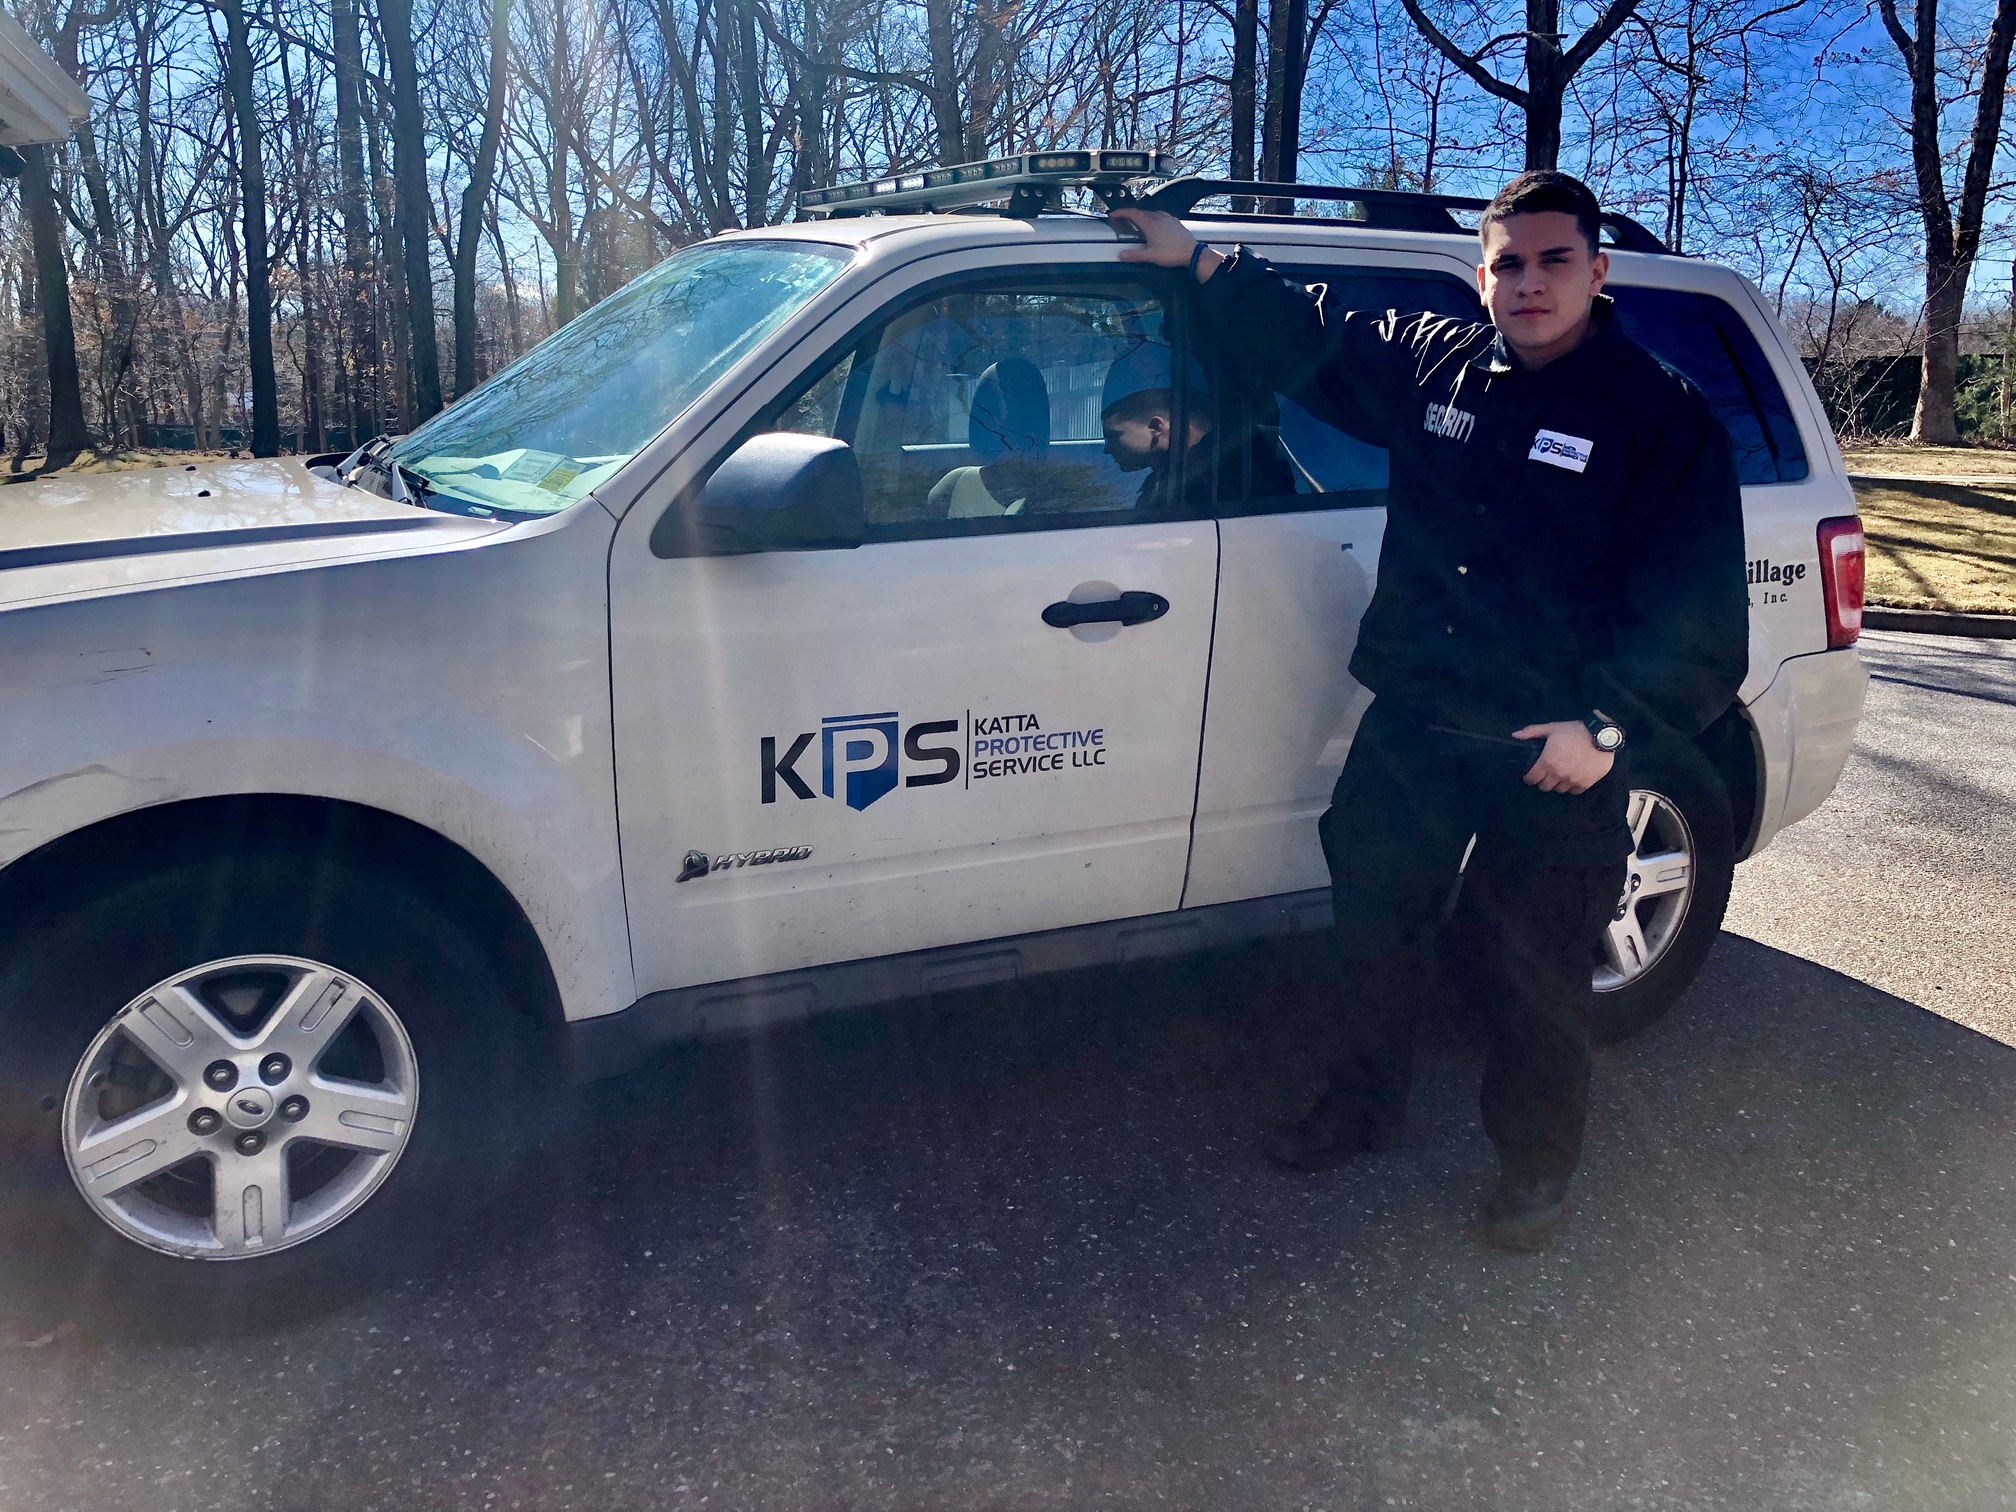 KPS Officer on patrol at a gated community in Long Island NY